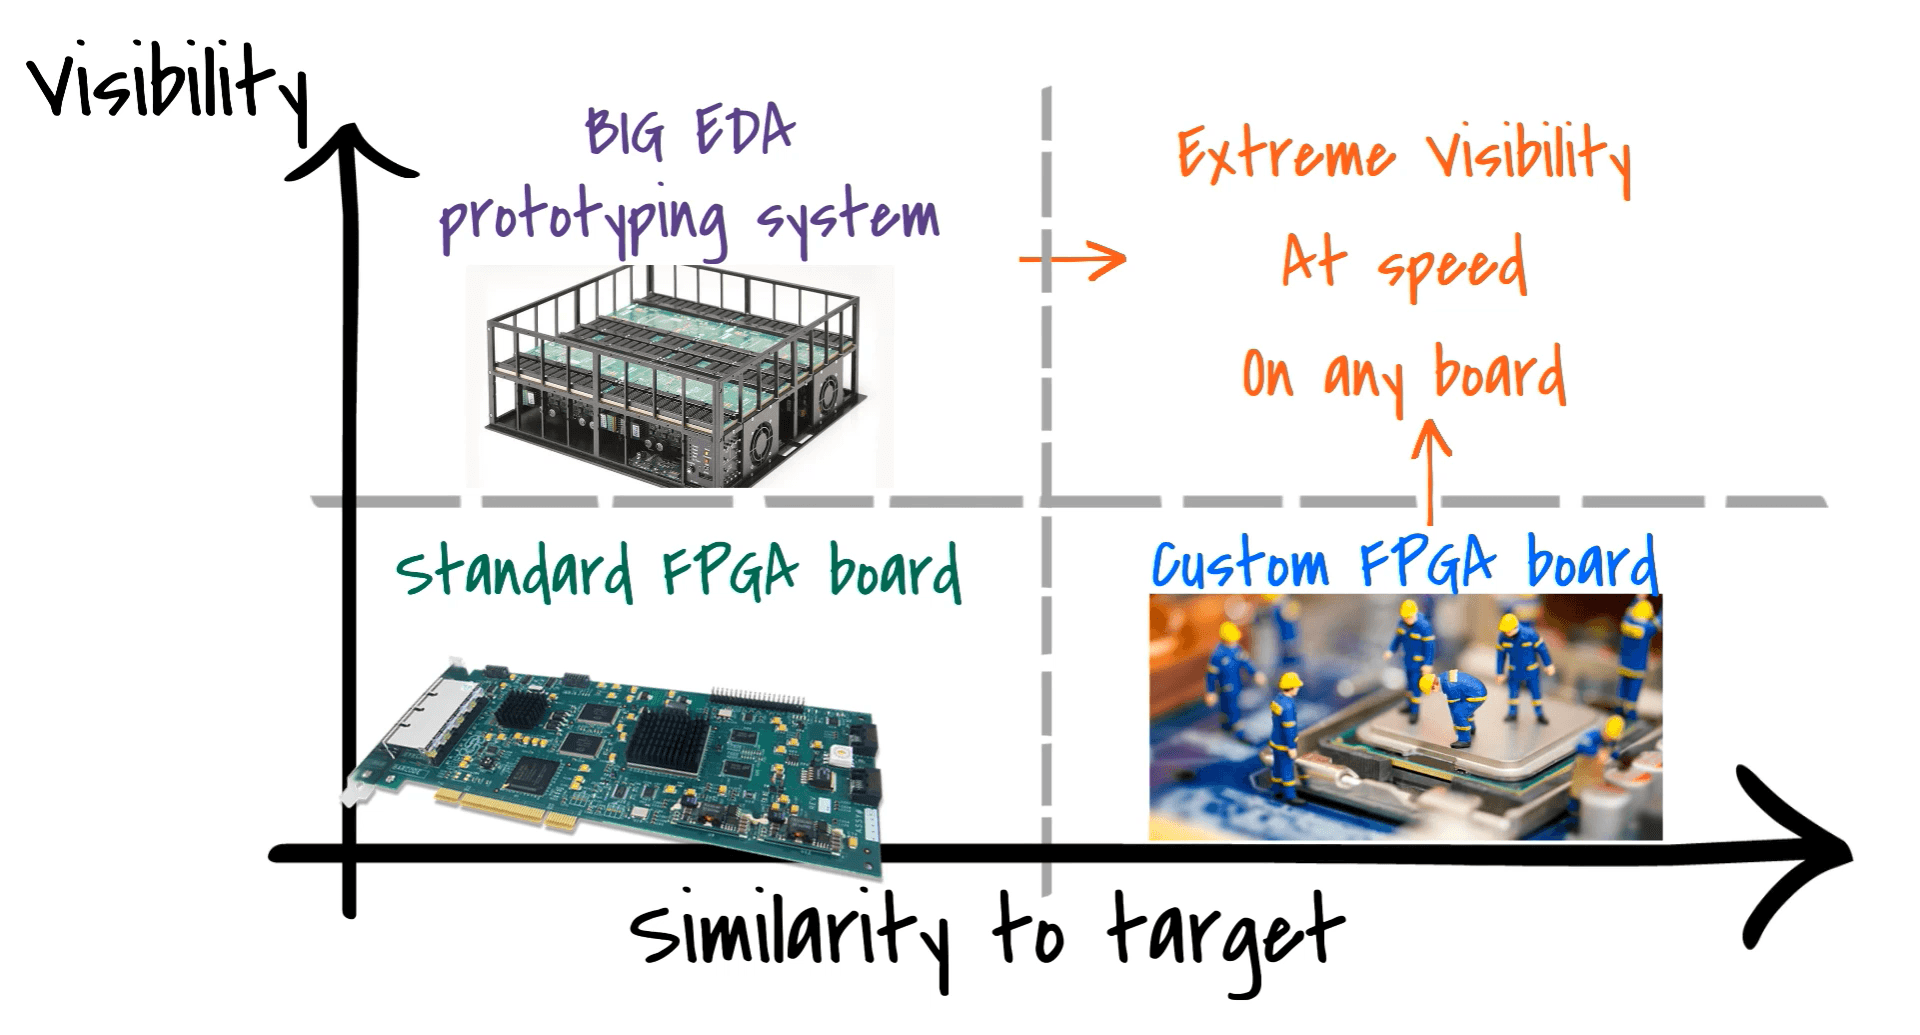 Comparing solutions for FPGA-based prototyping / ASIC prototyping